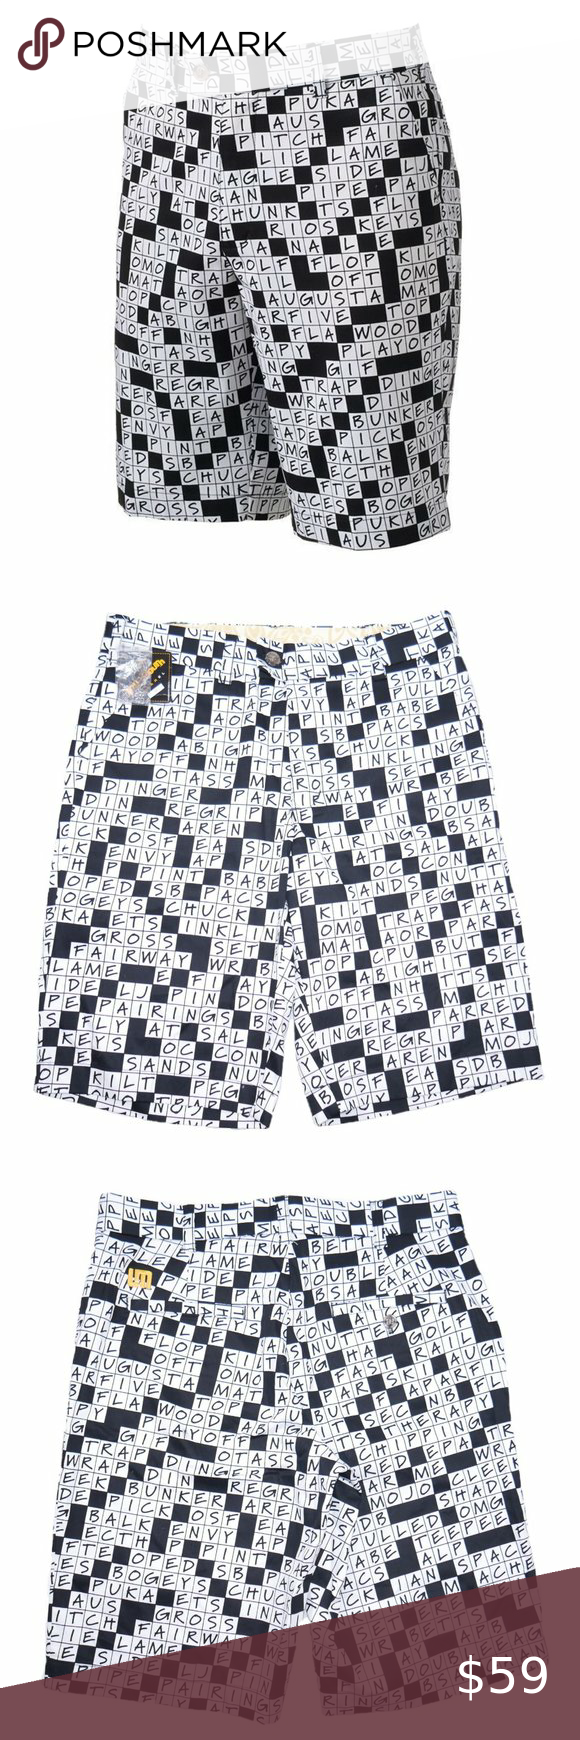 Loudmouth Mens Stretch Dry-Fit Golf Shorts Size 30 ...